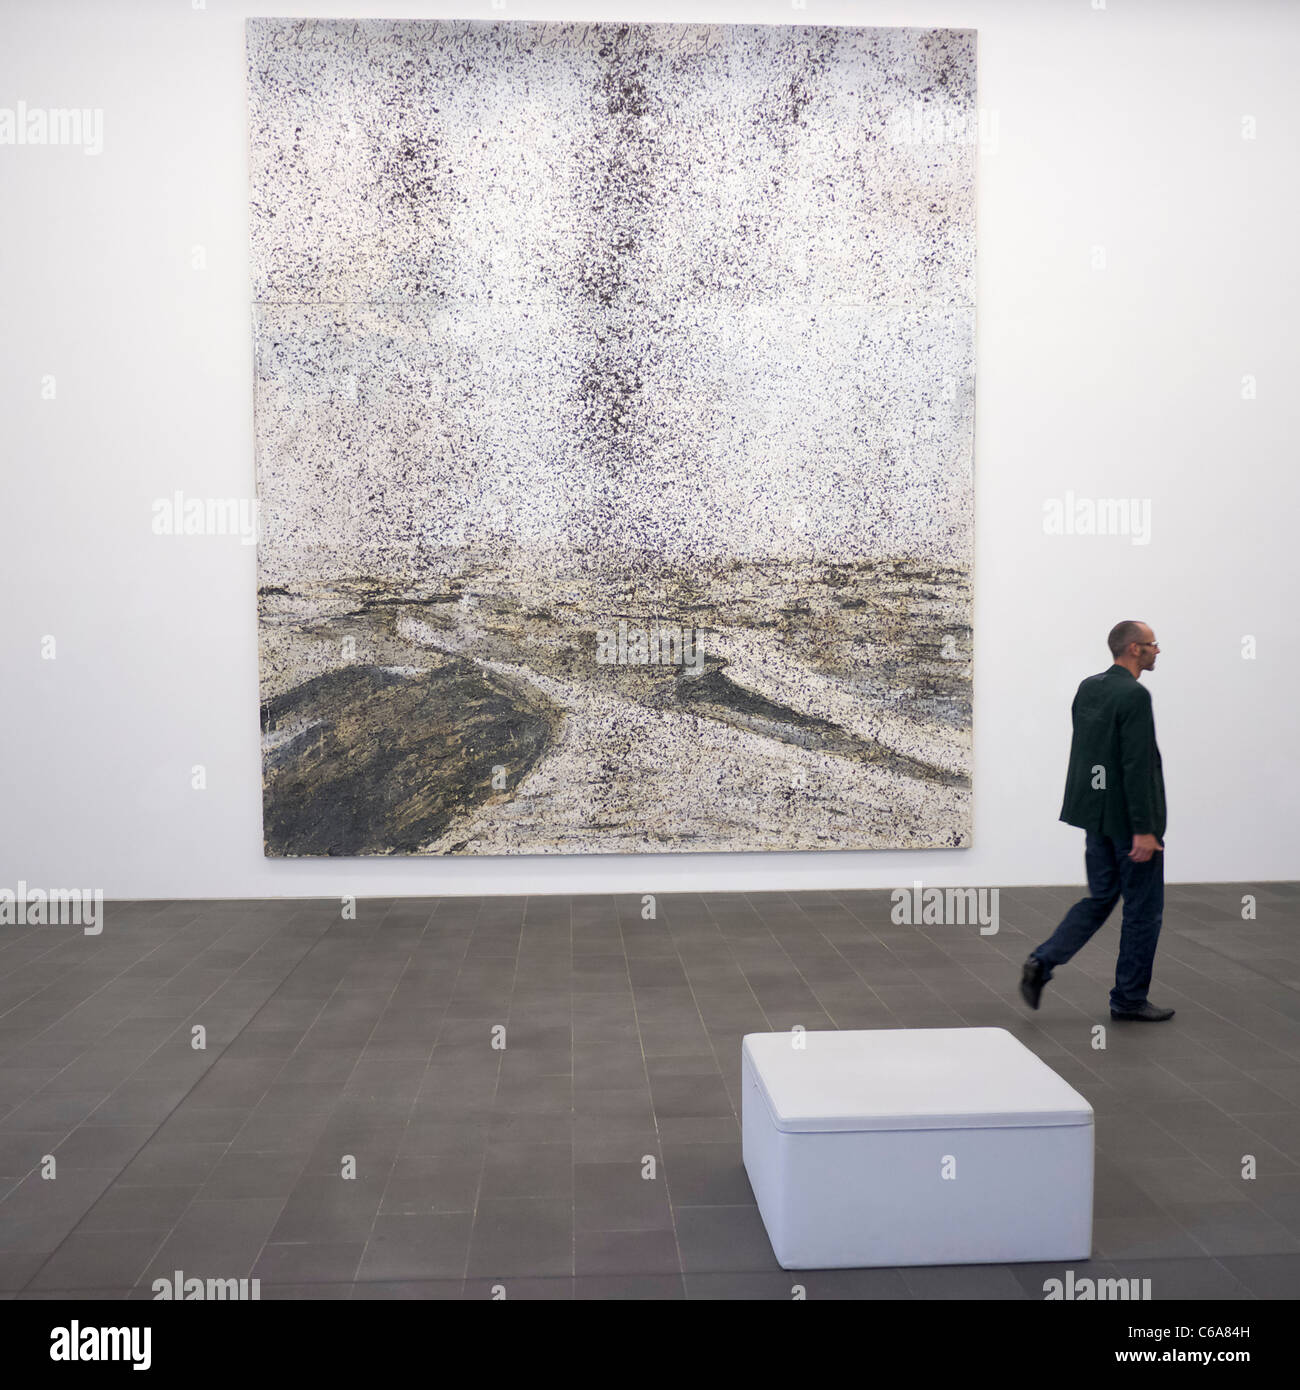 Painting Cette Obscure clarte qui tombe des etoiles by Anselm Kiefer at Kuppersmuhle Museum at Innenhafen area of - Stock Image